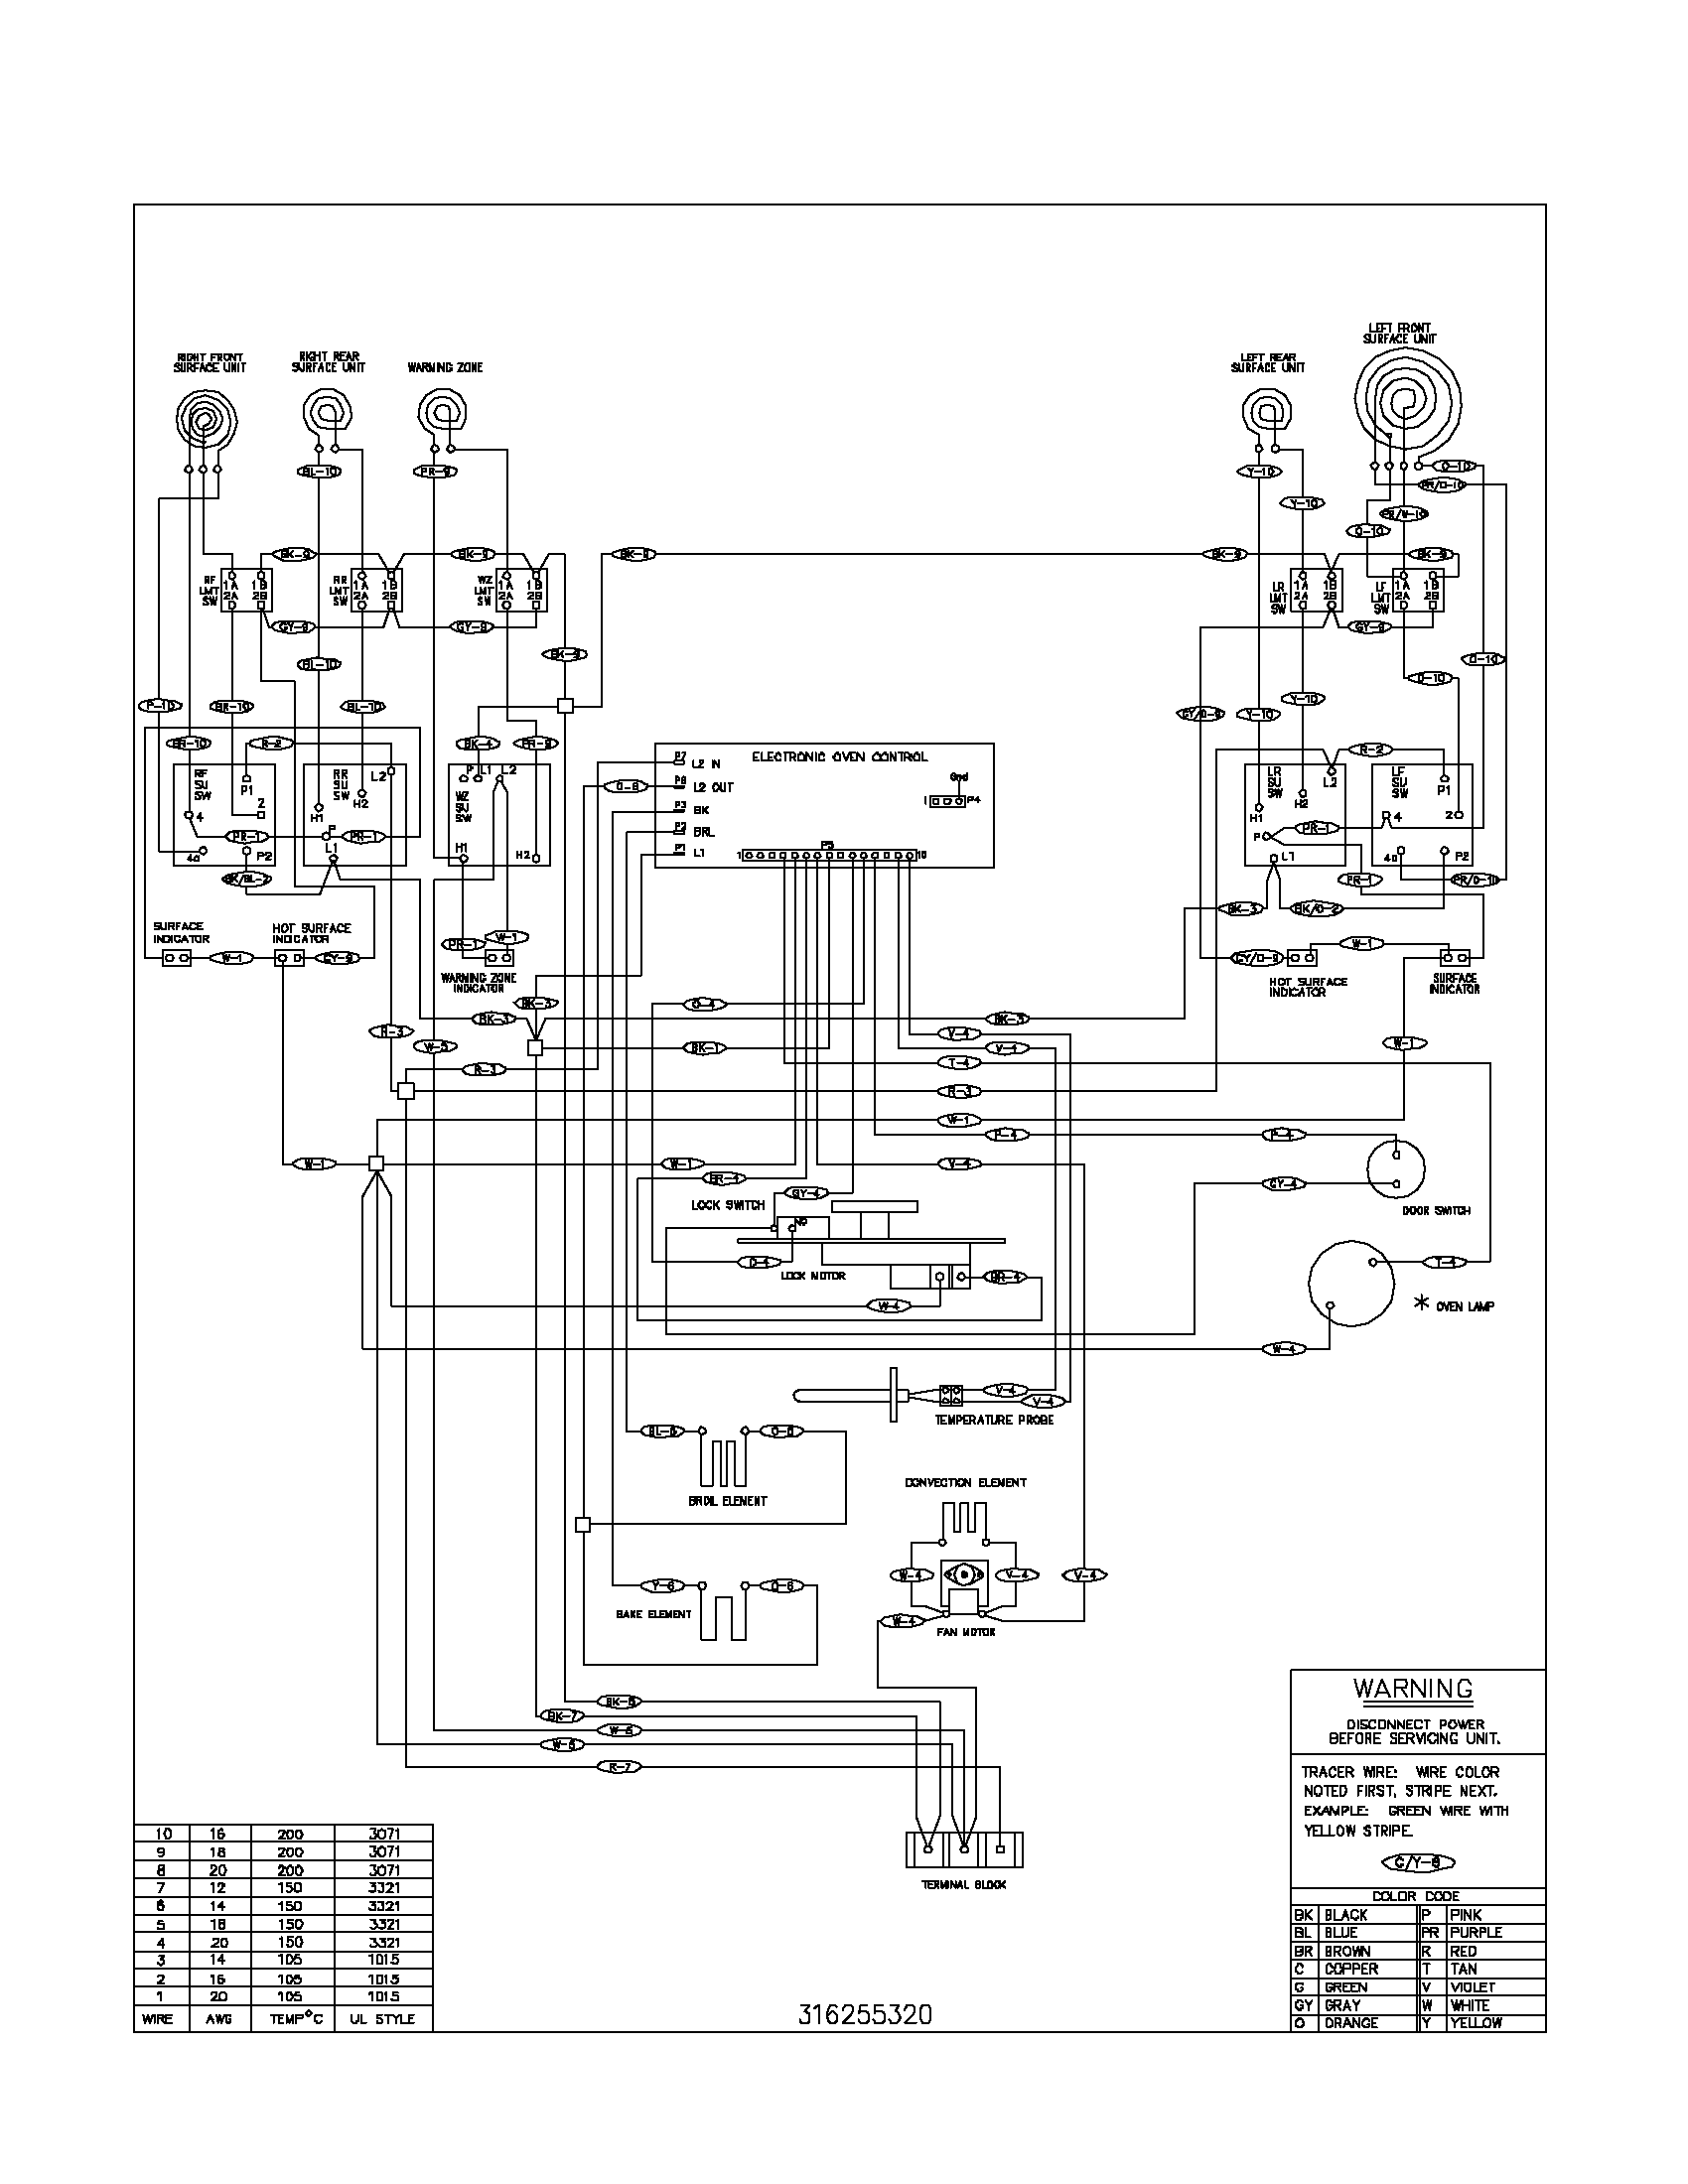 whirlpool stove wiring schematic wiring diagram \u2022 whirlpool refrigerator electrical schematic whirlpool fefl88acc electric range timer stove clocks and rh appliancetimers com whirlpool duet washer wiring diagram whirlpool cooktop wiring diagrams